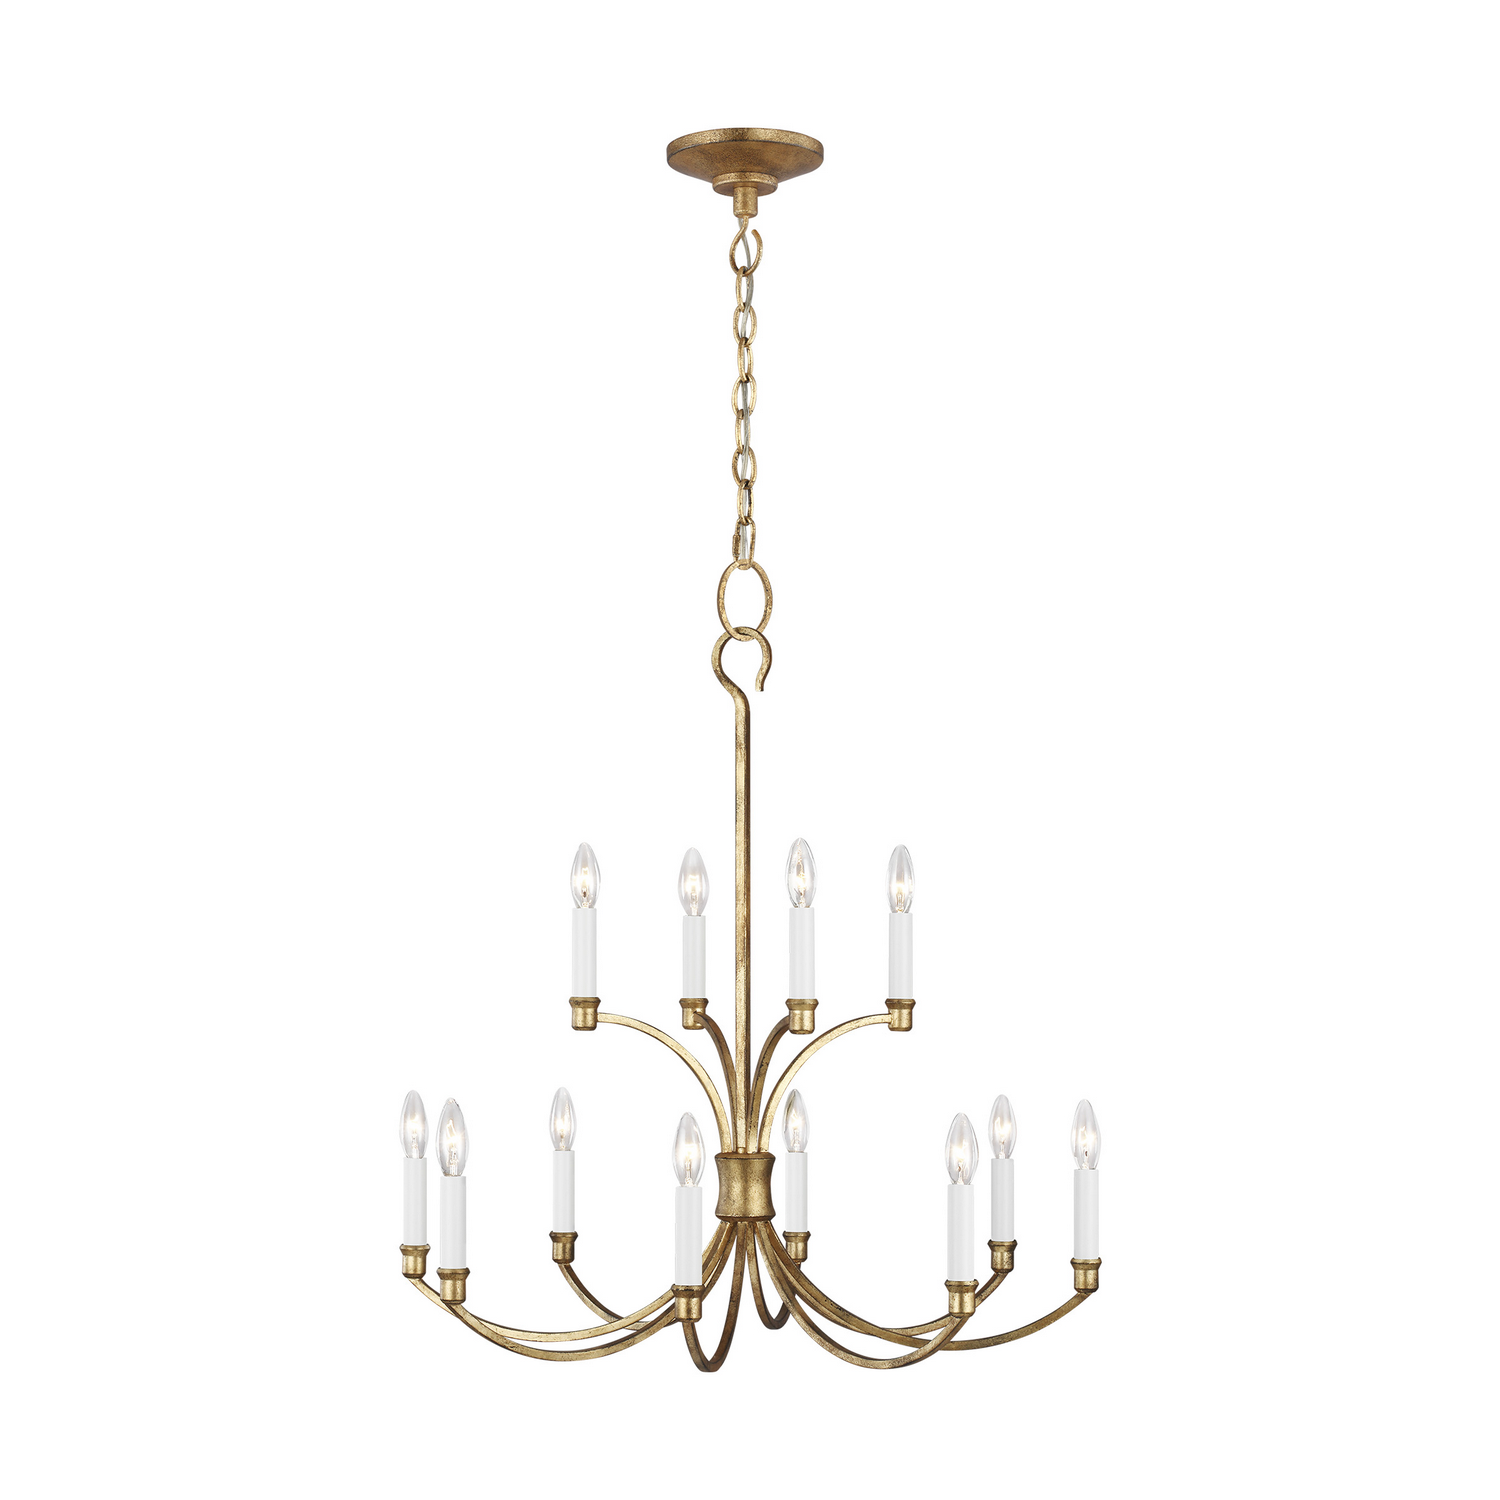 12 Light Chandelier from the Westerly collection by Feiss CC10612ADB